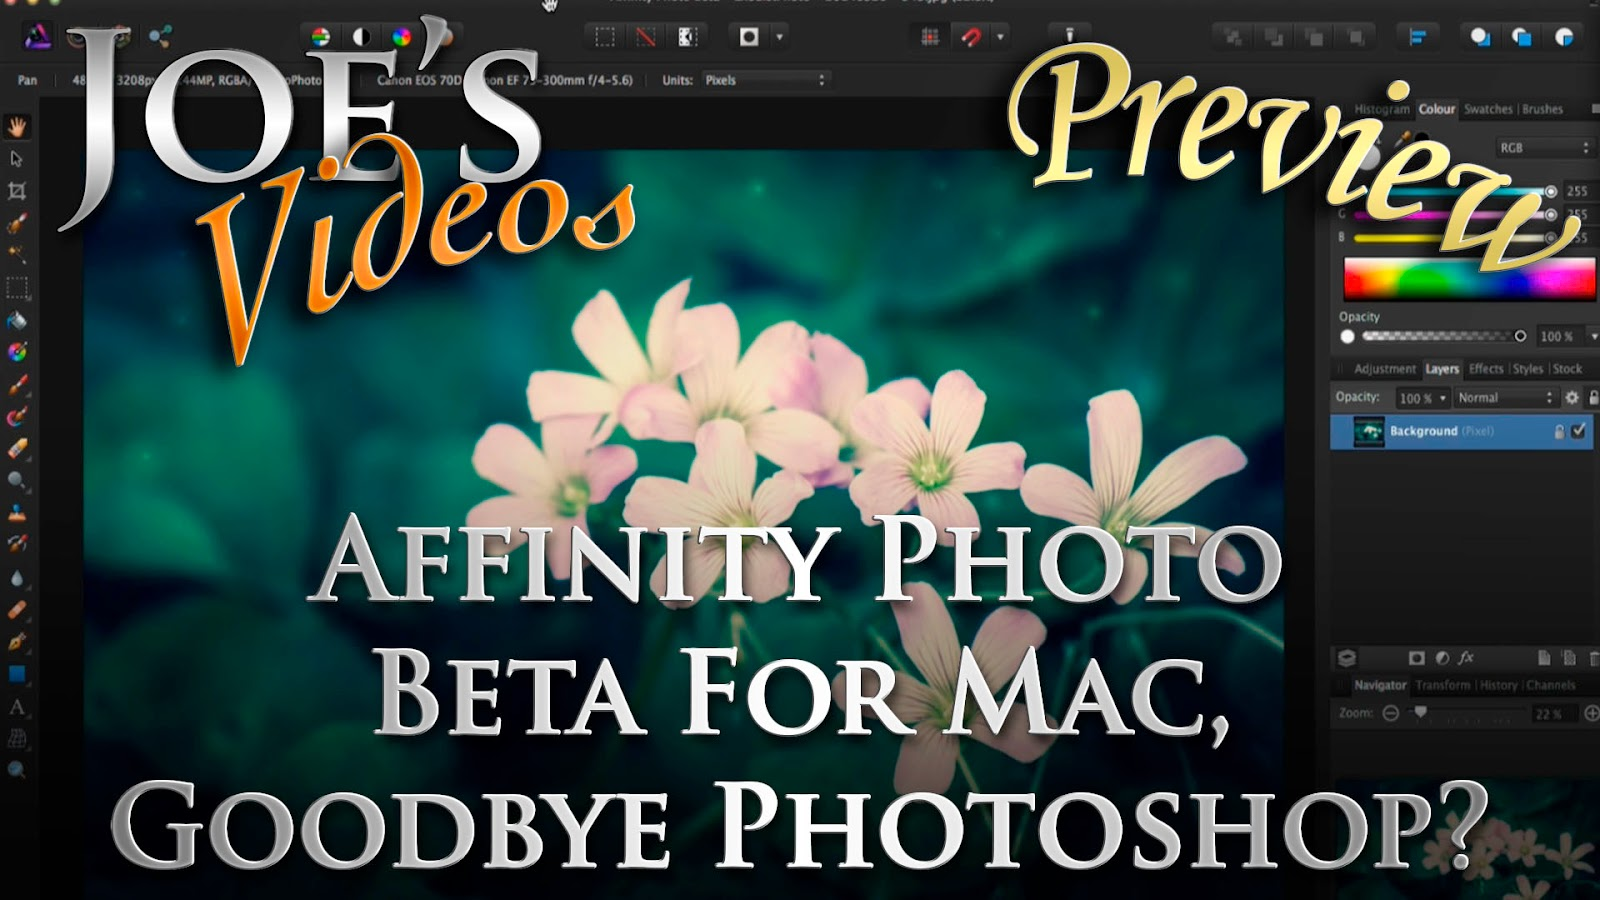 Affinity Photo Beta Preview For Mac, Goodbye Photoshop? | Joe's Videos